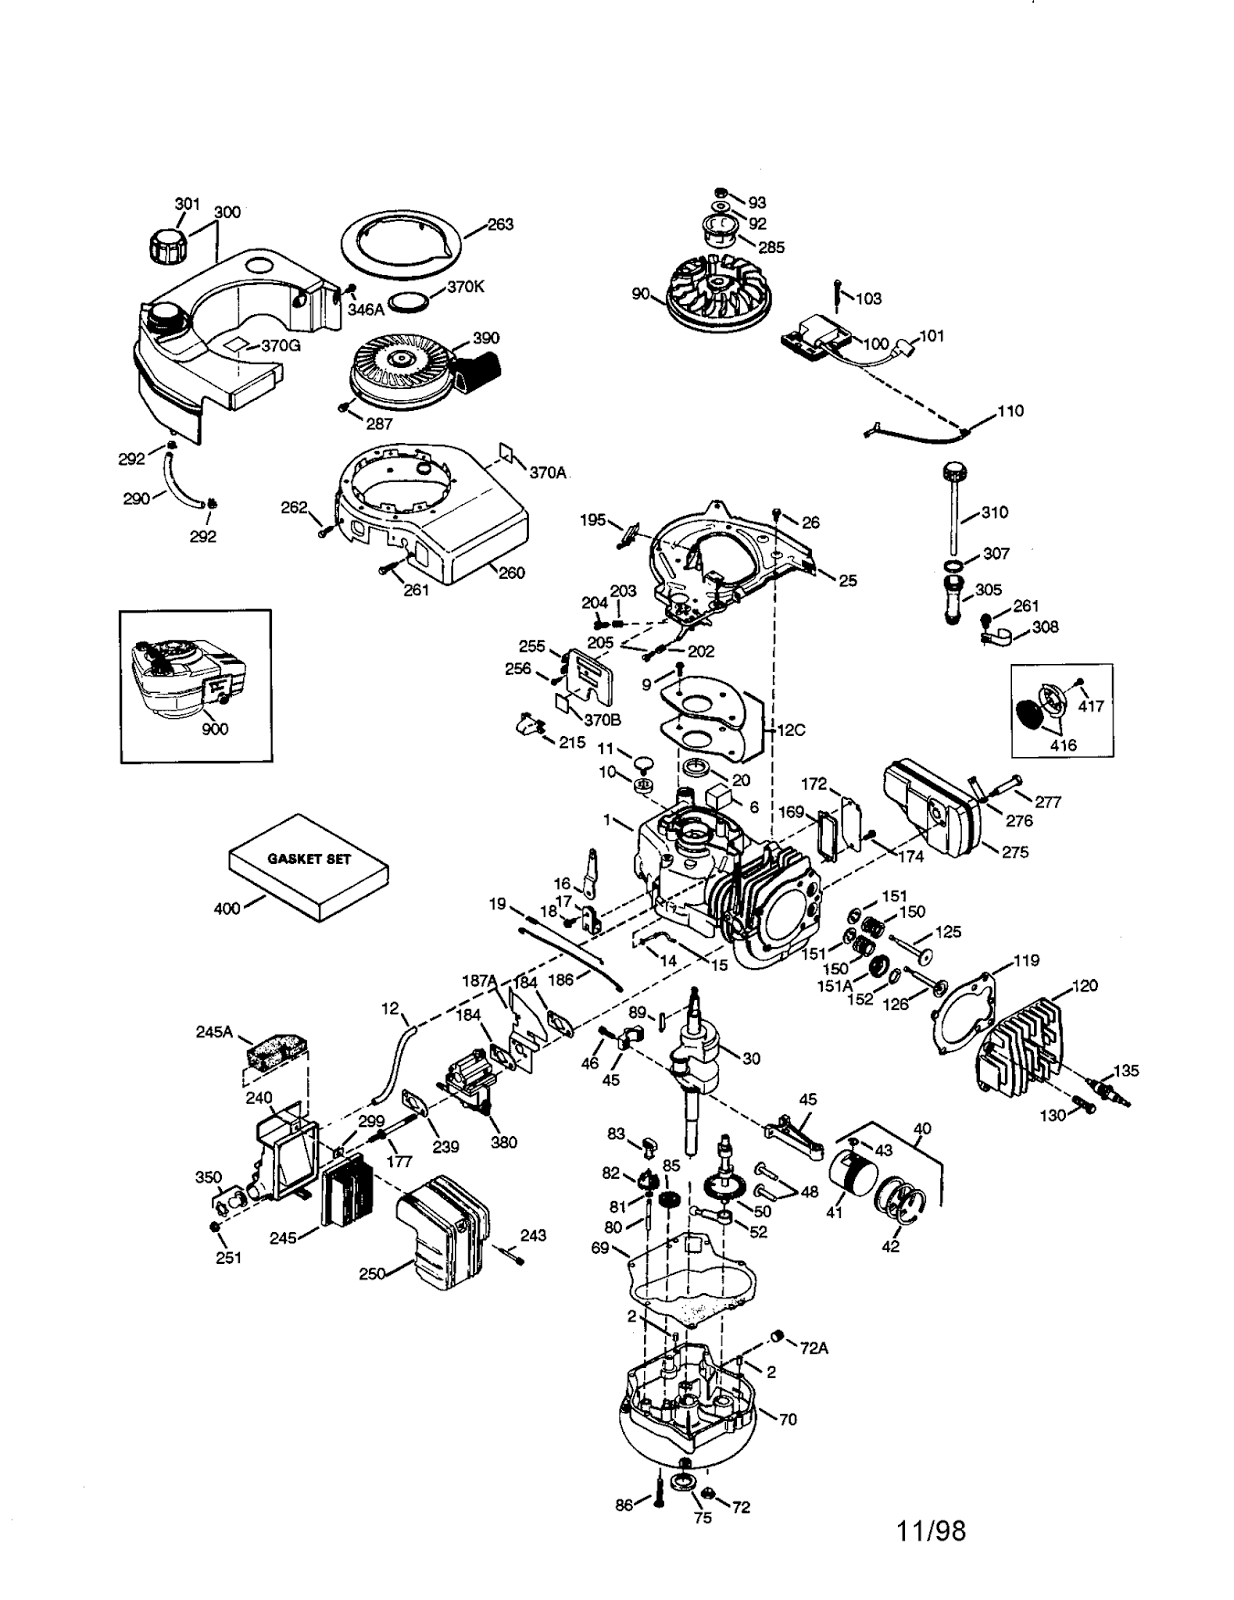 Free Service Repair Manual Tecumseh engine parts diagram – Honda Gx390 Engine Diagram